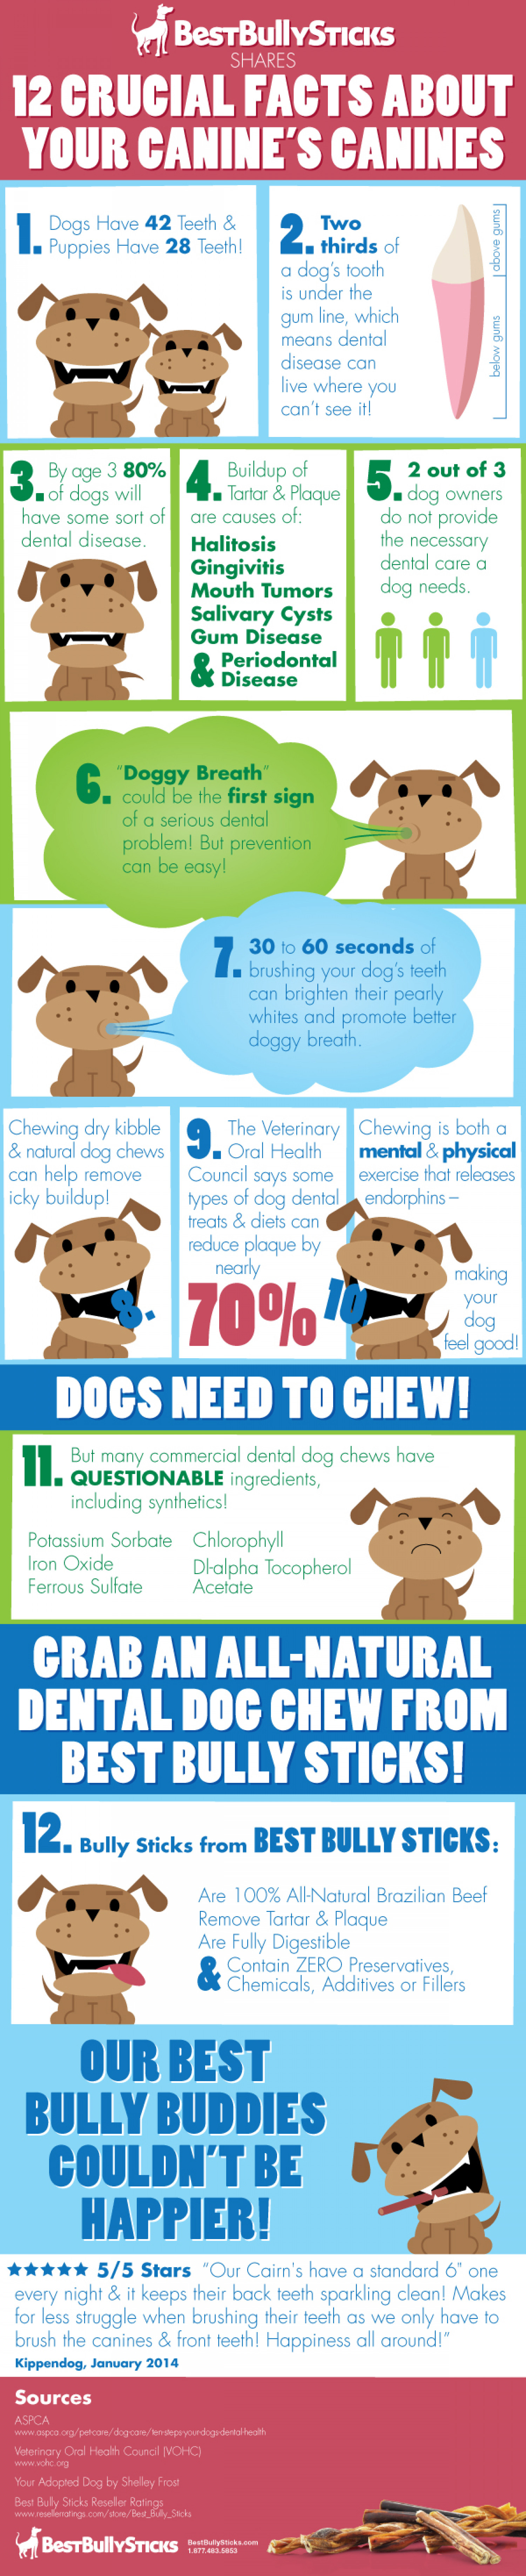 12 Crucial Facts About Your Canine's Canines Infographic